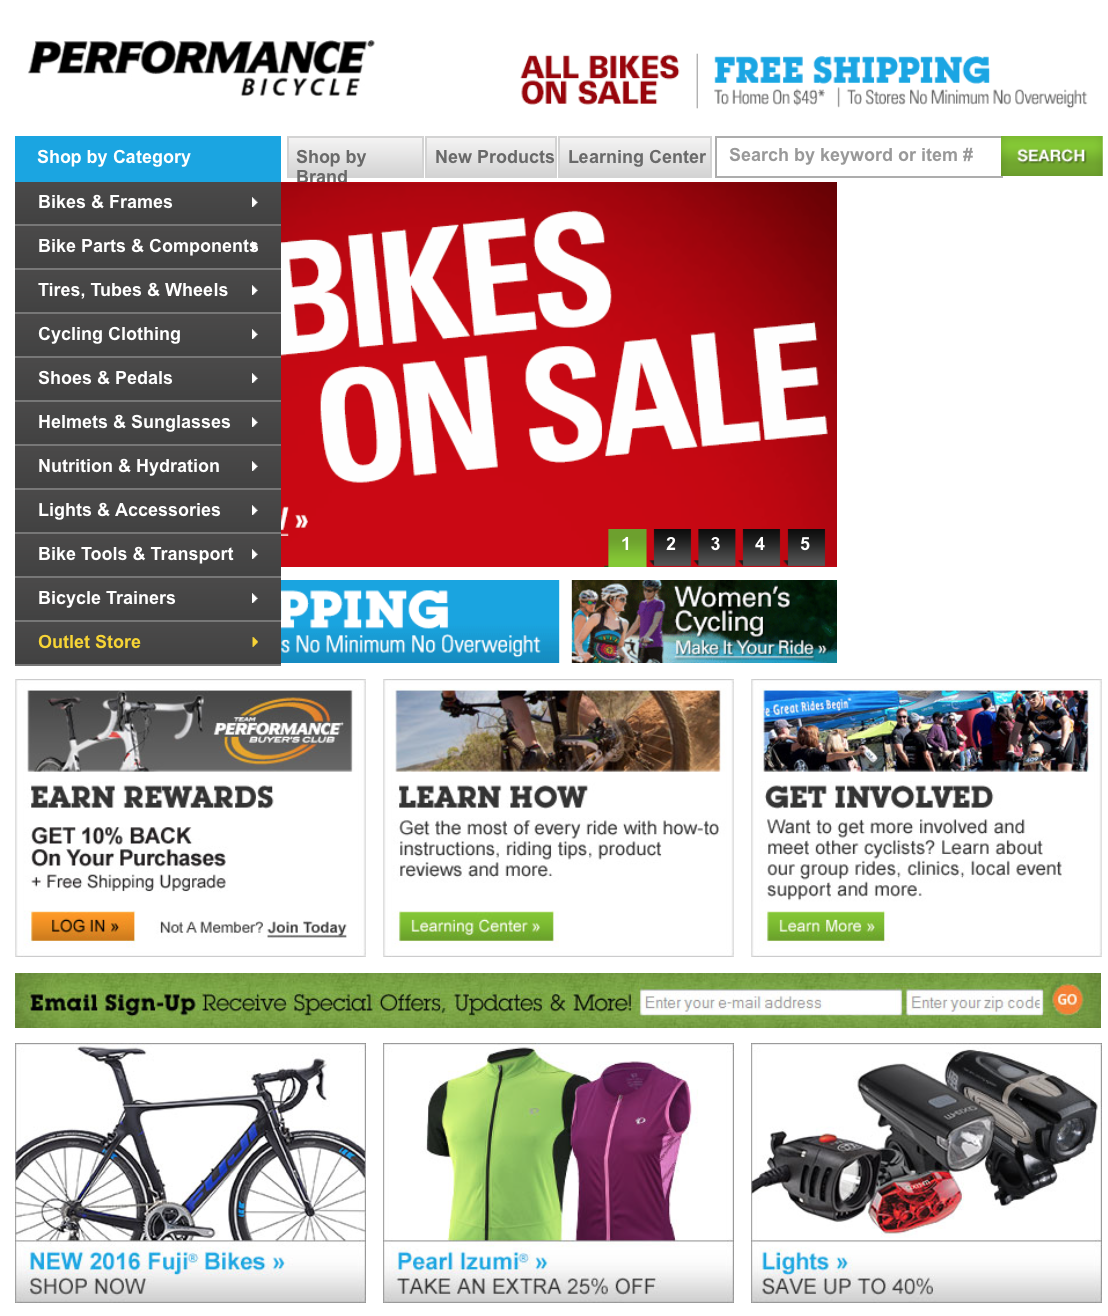 Save $$$ at Performance Bike with coupons and deals like: 30% Back Sitewide for Team Performance Buyer's Club Members ~ Free Shipping on Entire Order with Select Garmin Items ~ Up to 70% Off New Closeouts ~ Free Shipping on Select Helmets ~ Free Shipping on Orders $49+ ~ Outlet ~ and more >>>.